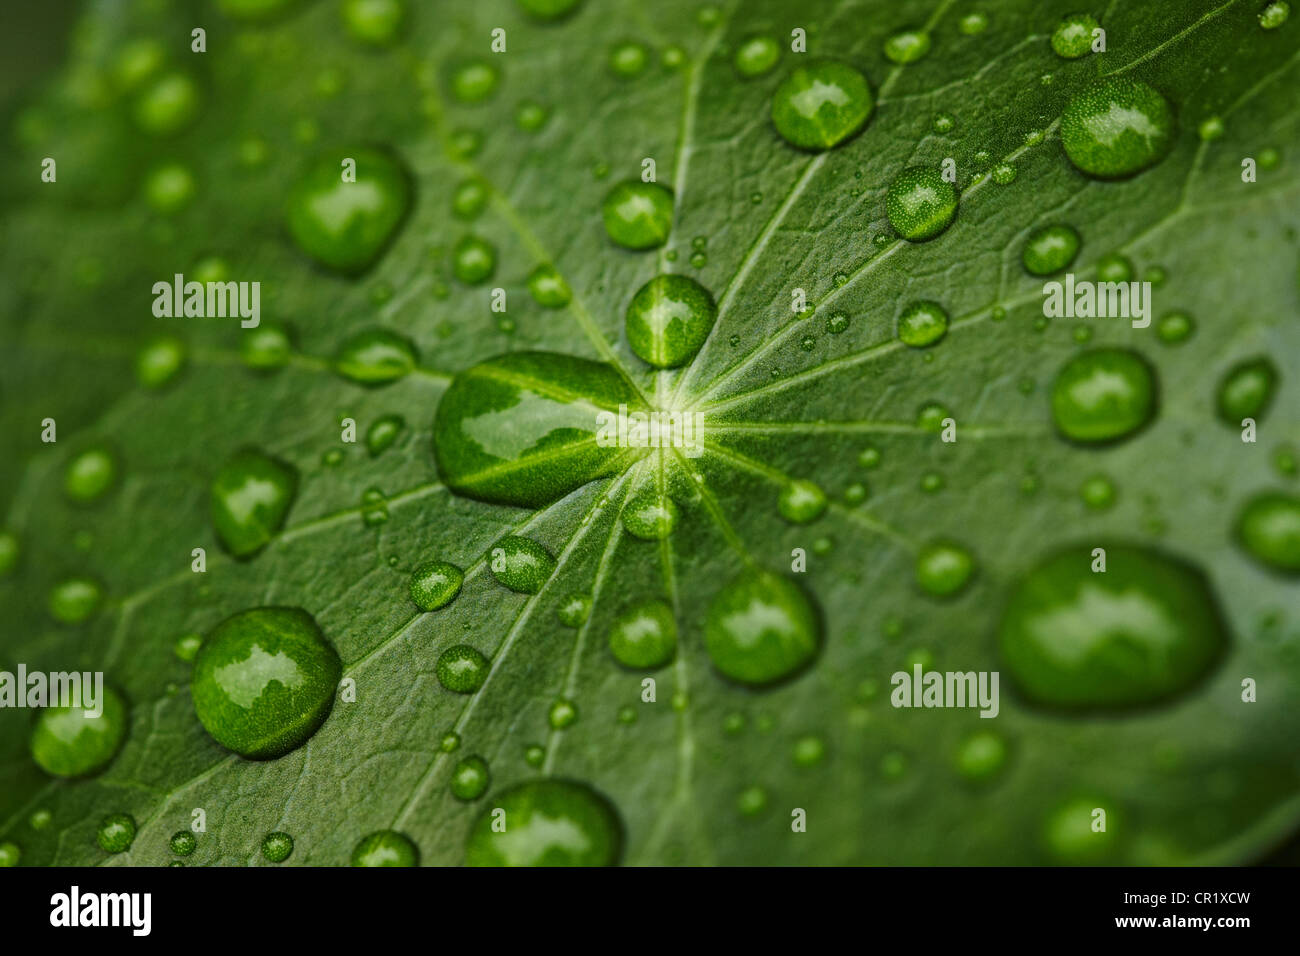 Close up of water droplets on leaf Photo Stock